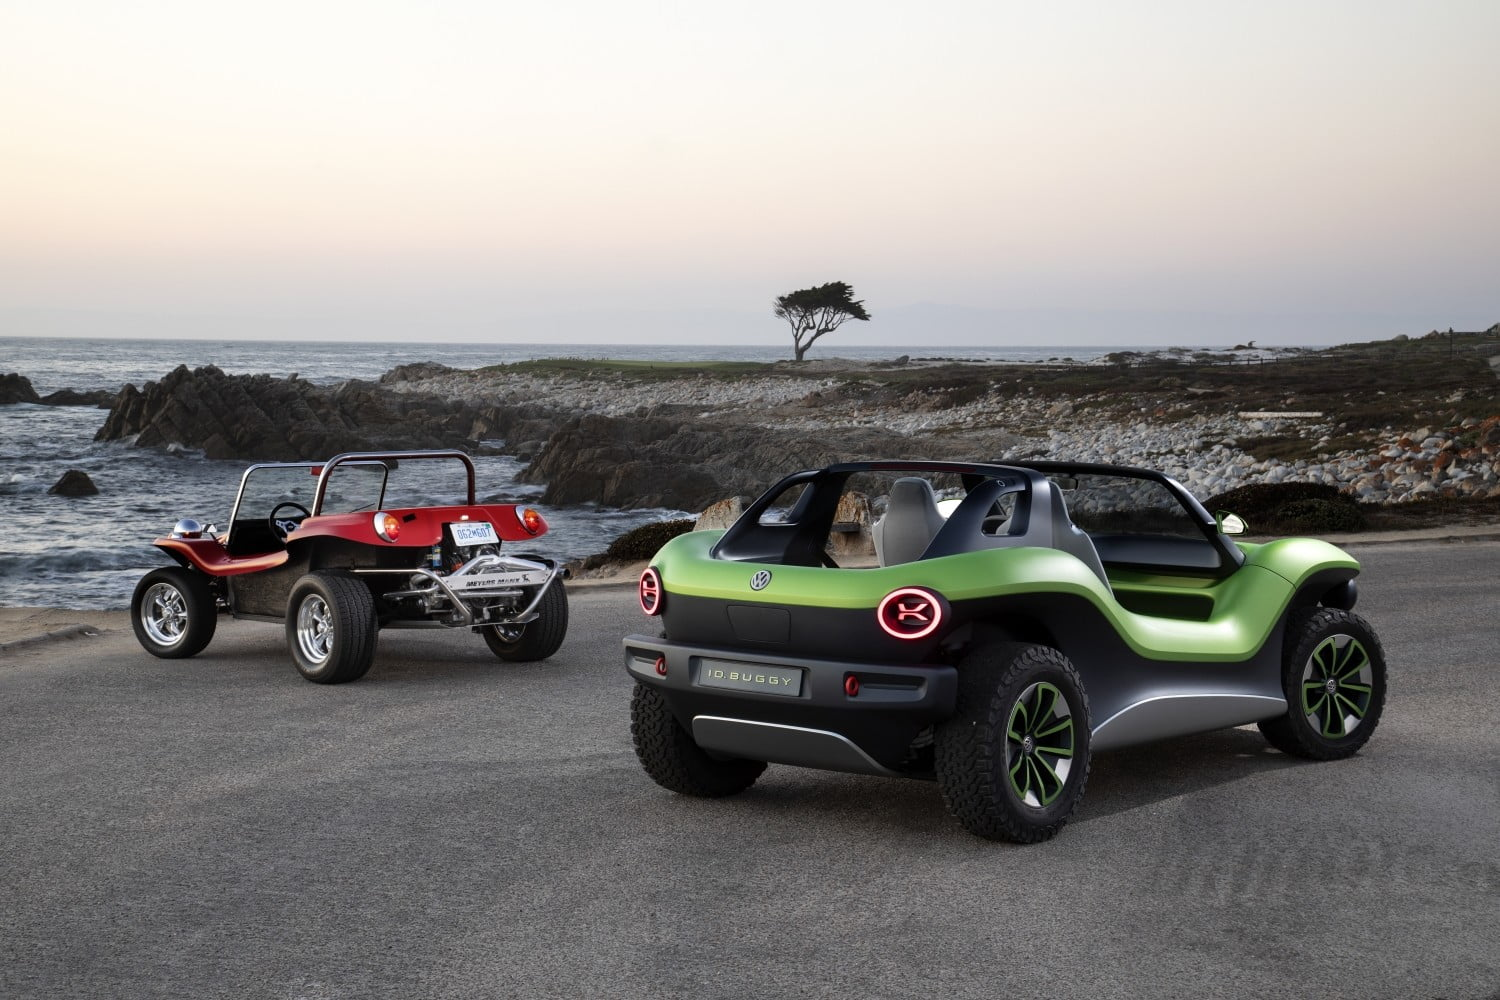 beach to baja dune buggies make news from vw id concept mcqueens manx 10102